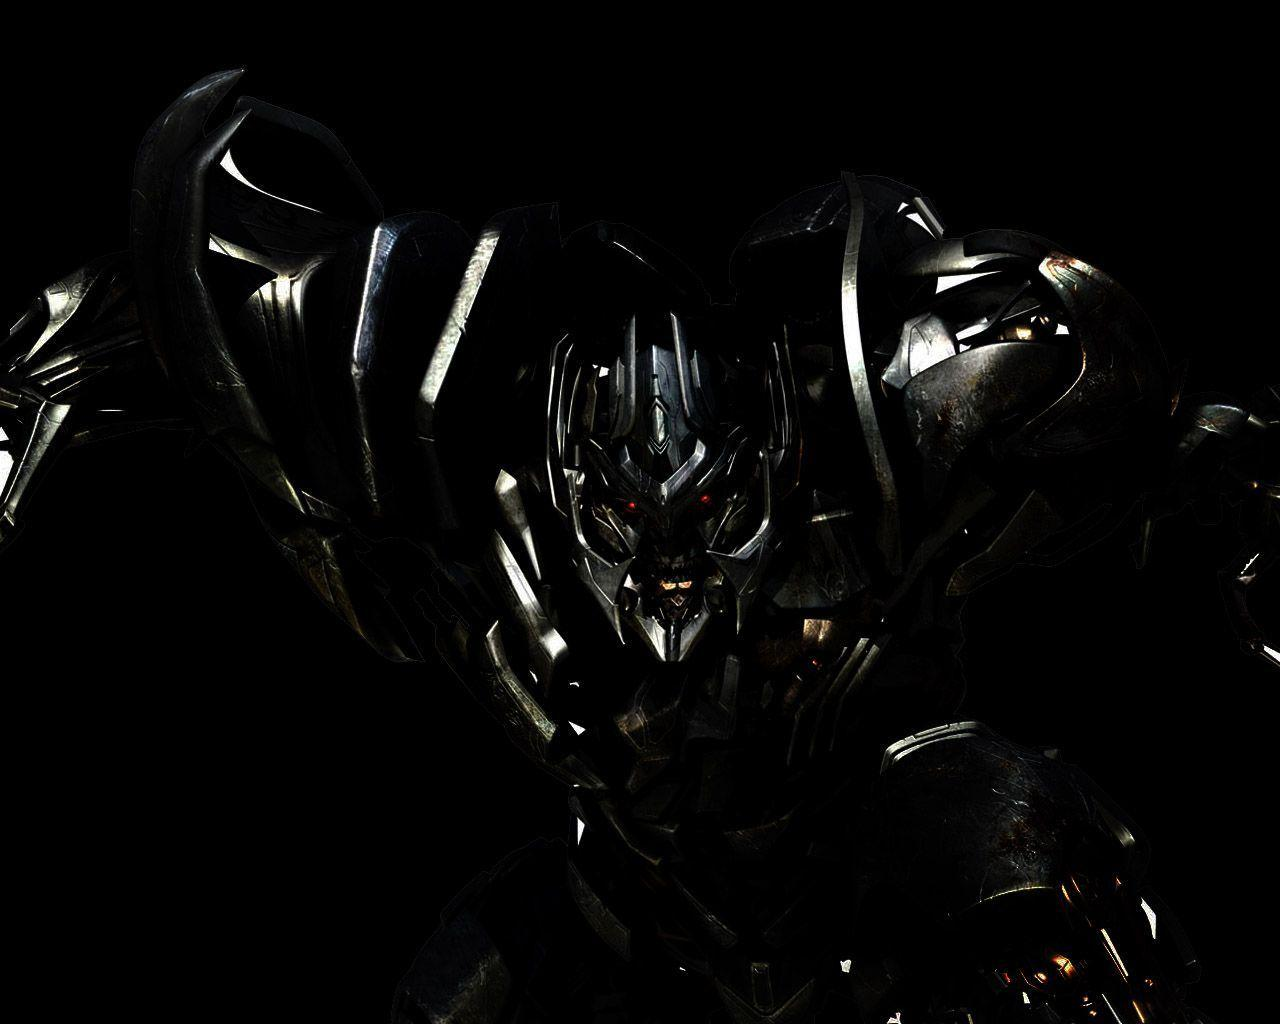 Megatron Wallpapers - Wallpaper Cave